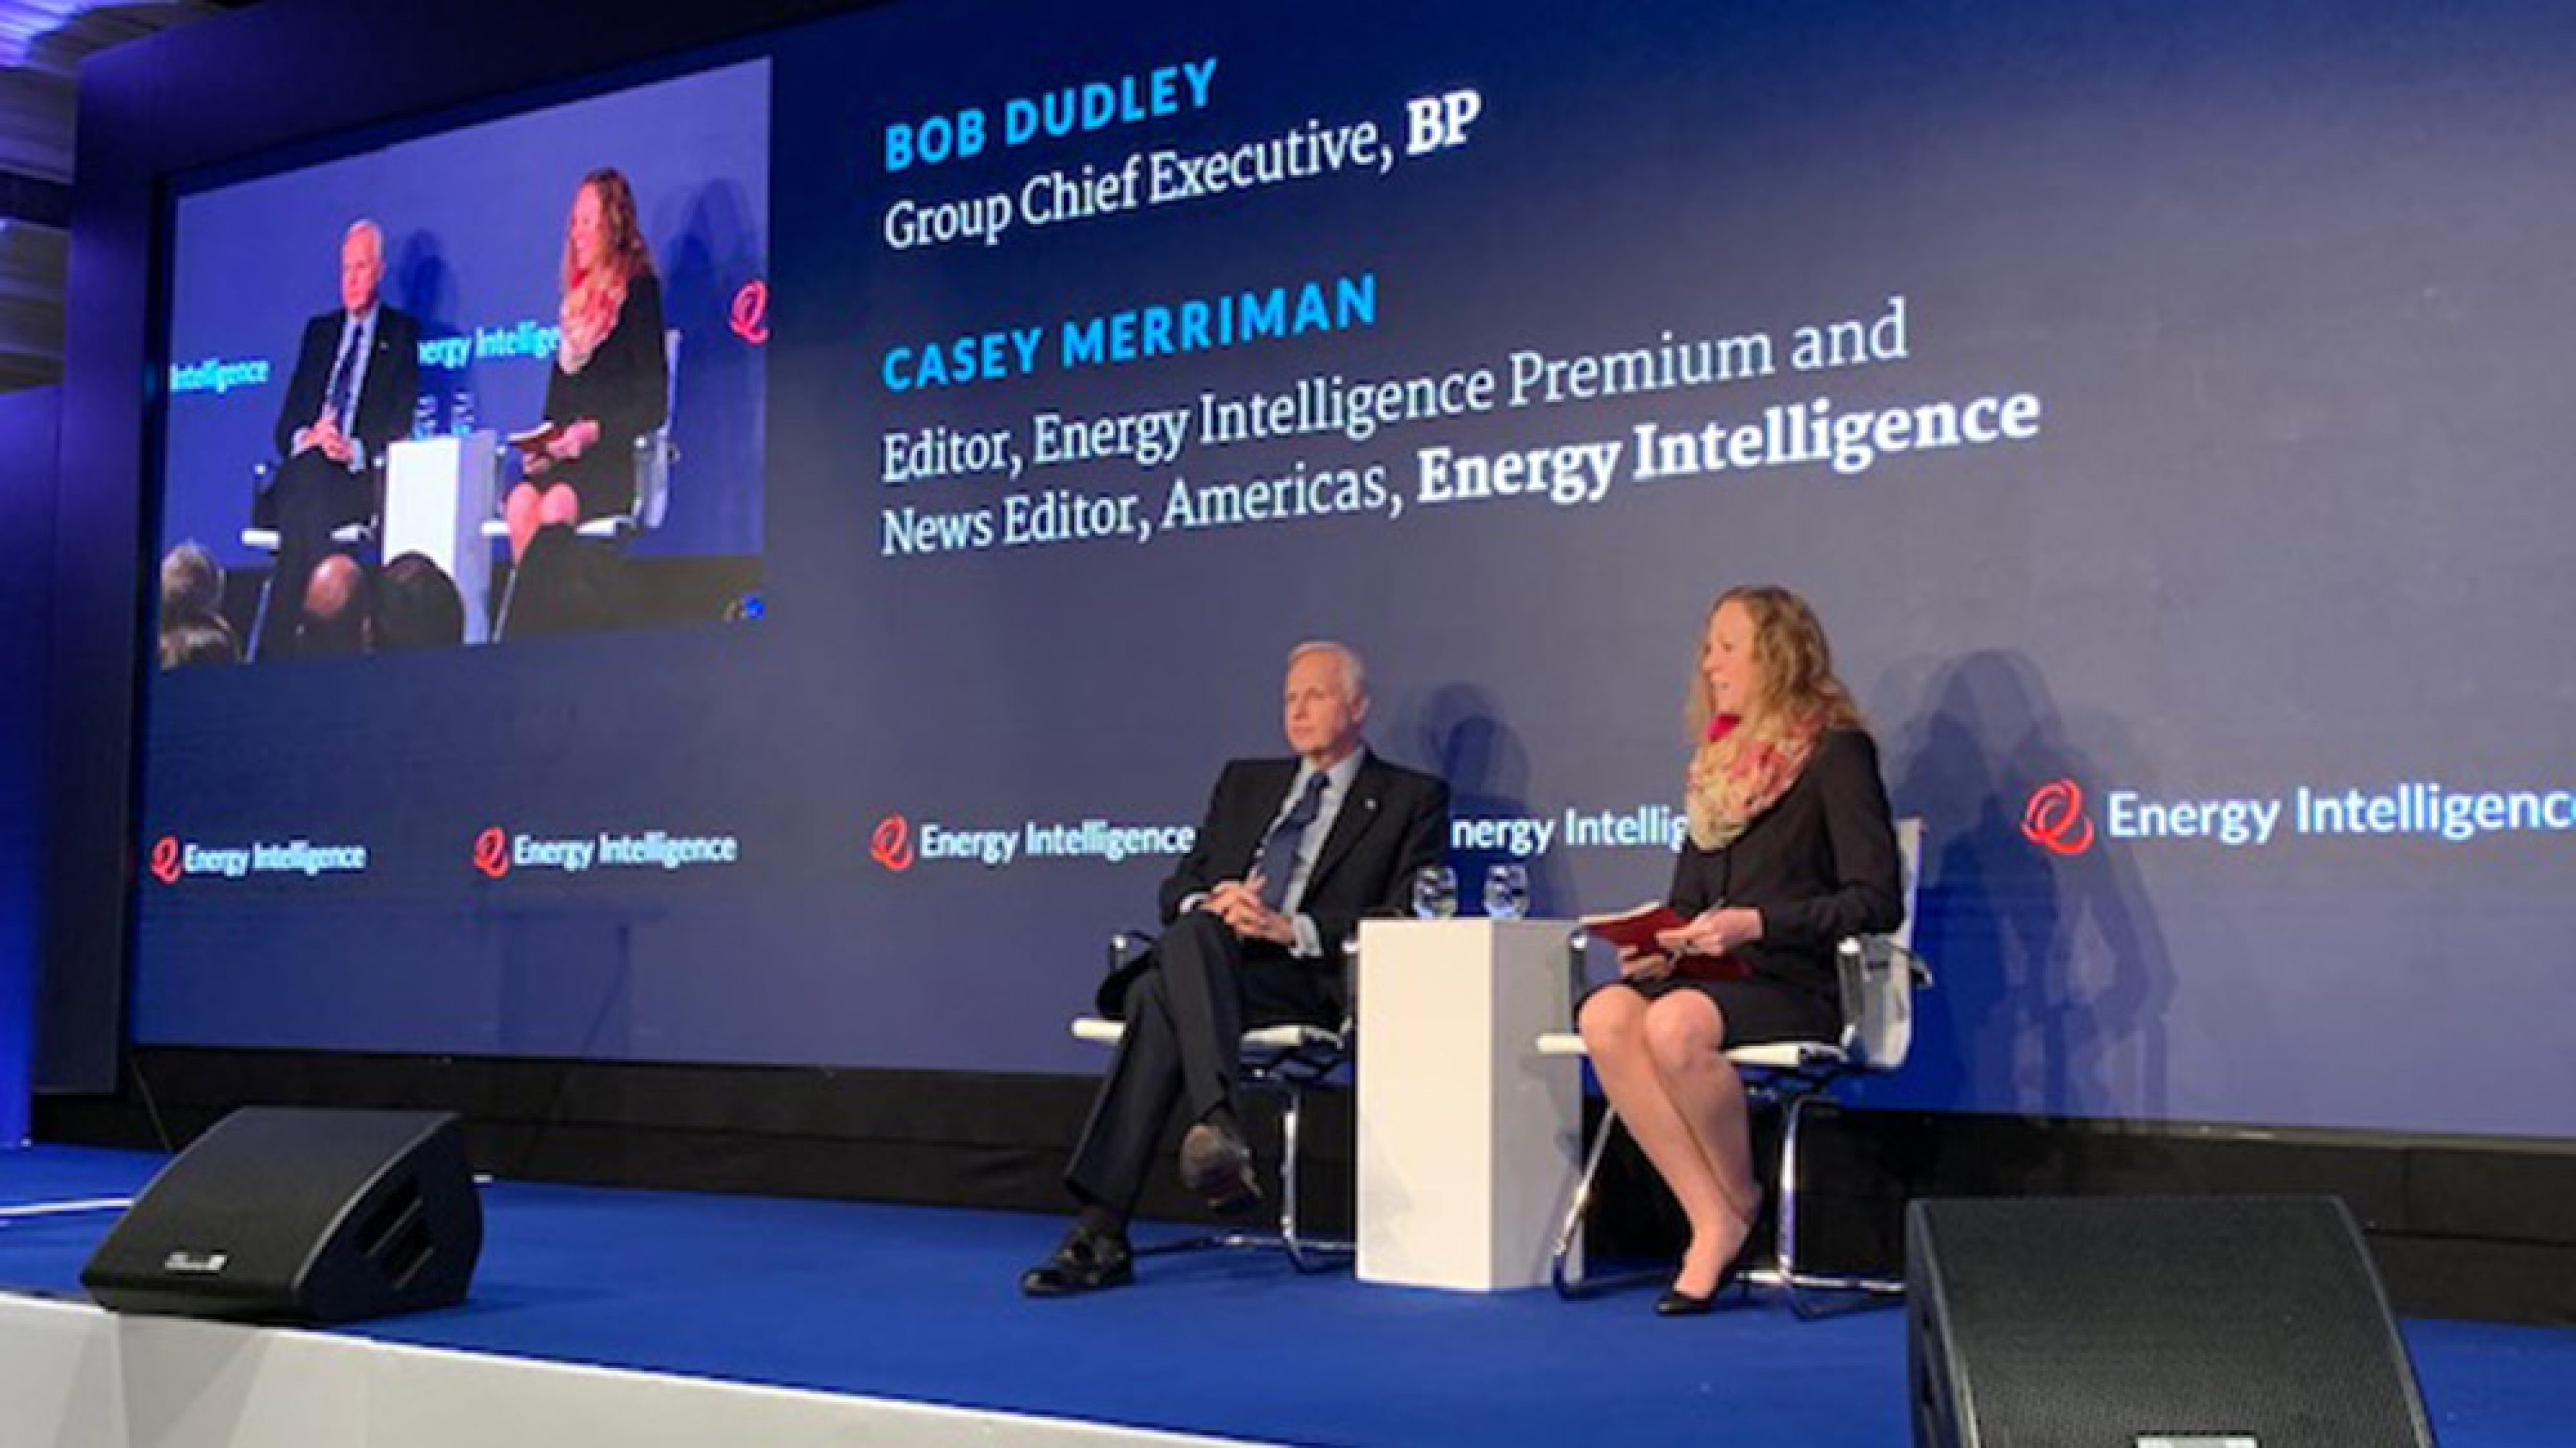 Bob Dudley, group chief executive at Energy Intelligence's Oil and Money conference 2019